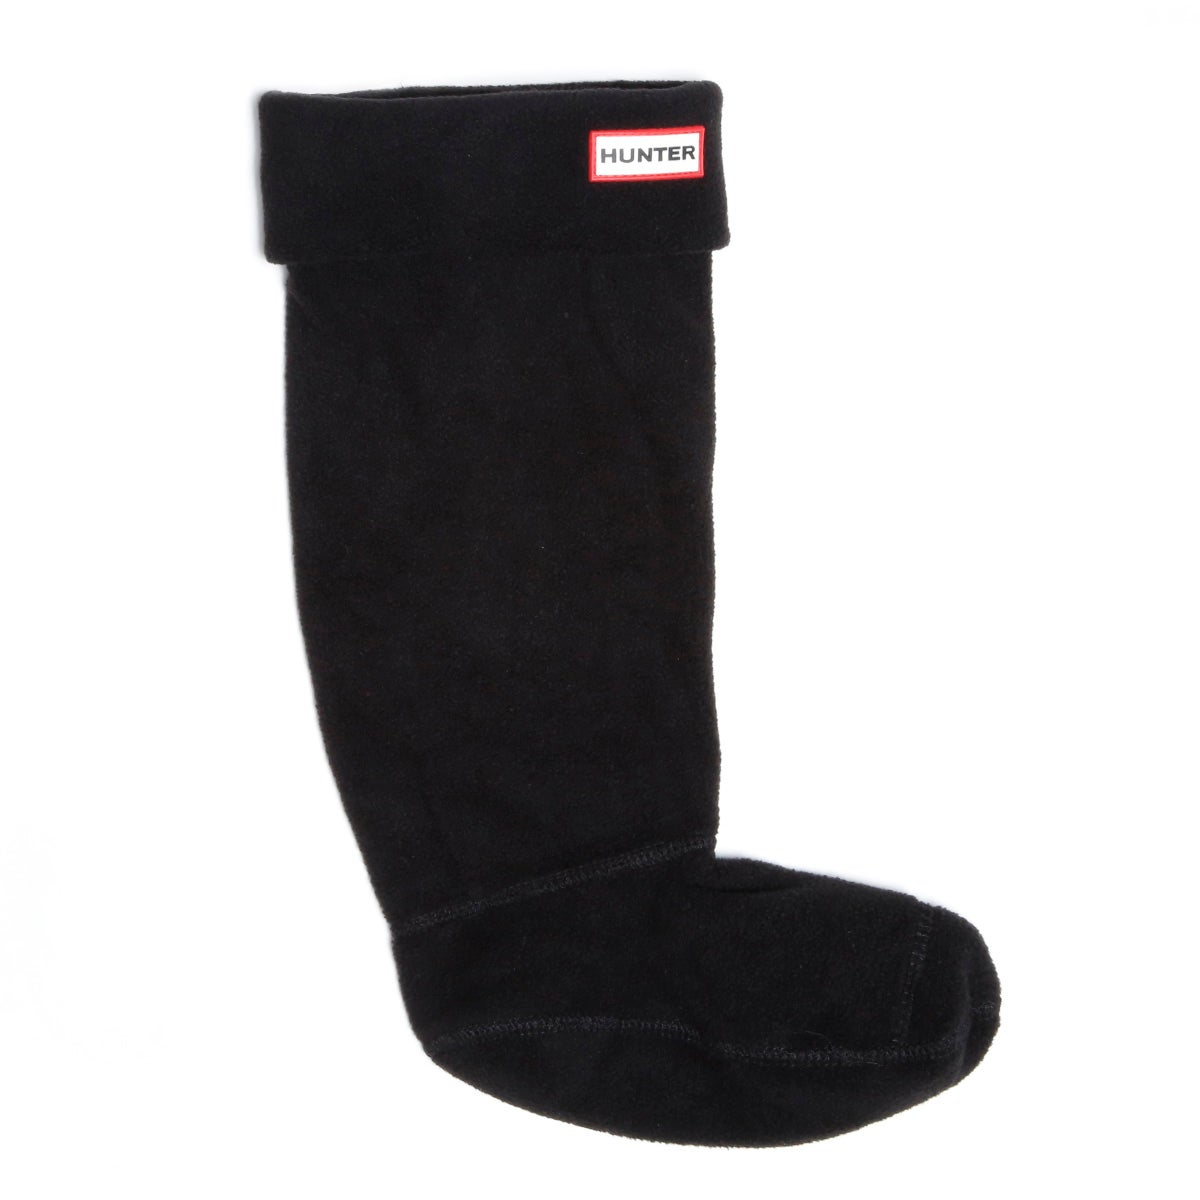 Lds Boot Sock black sock